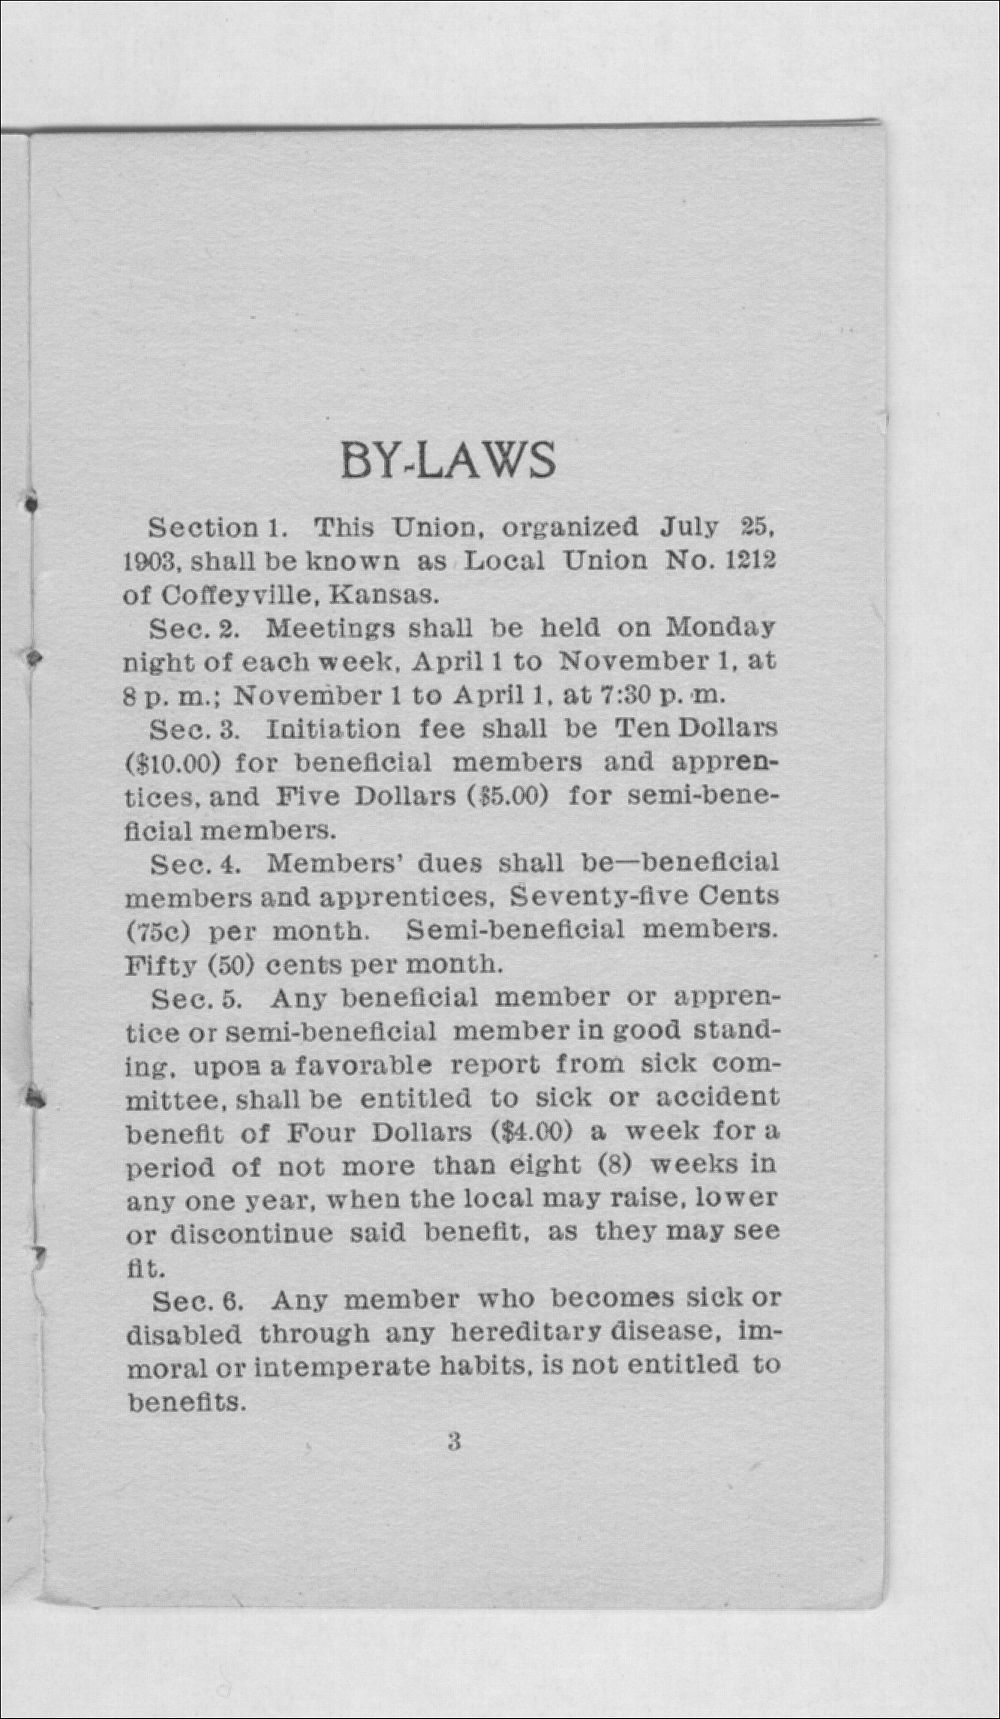 By-laws and trade rules of Carpenter's Union No. 1212 - 3